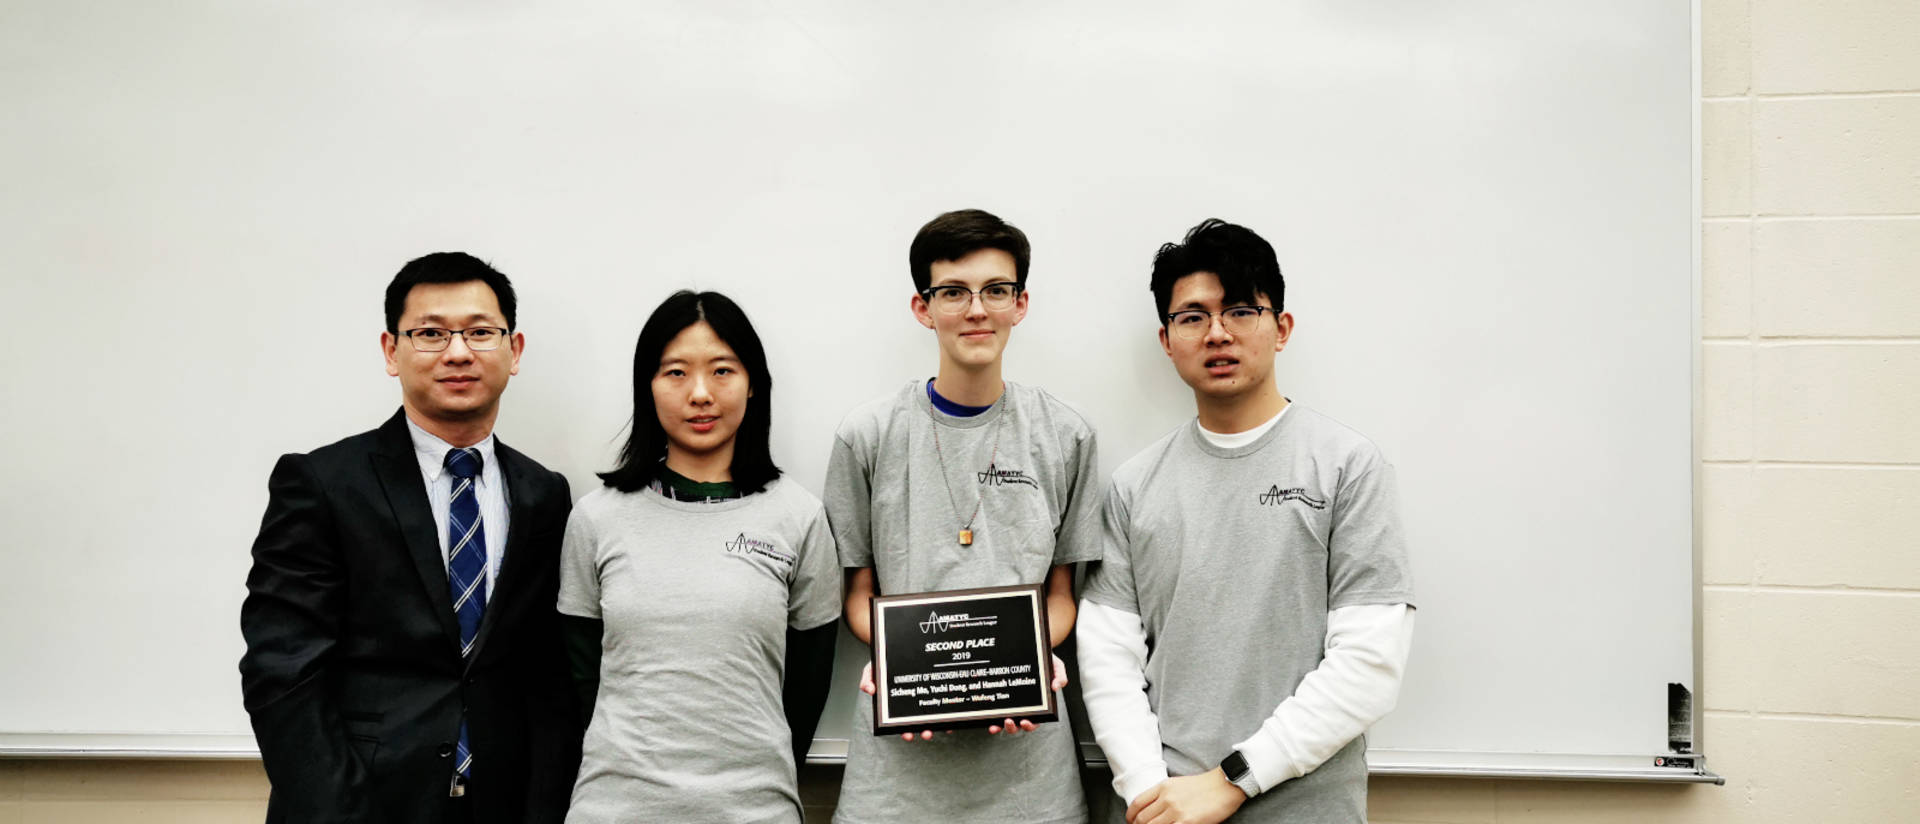 Smart Cities- Smart Futures competition team from UW-Eau Claire–Barron County